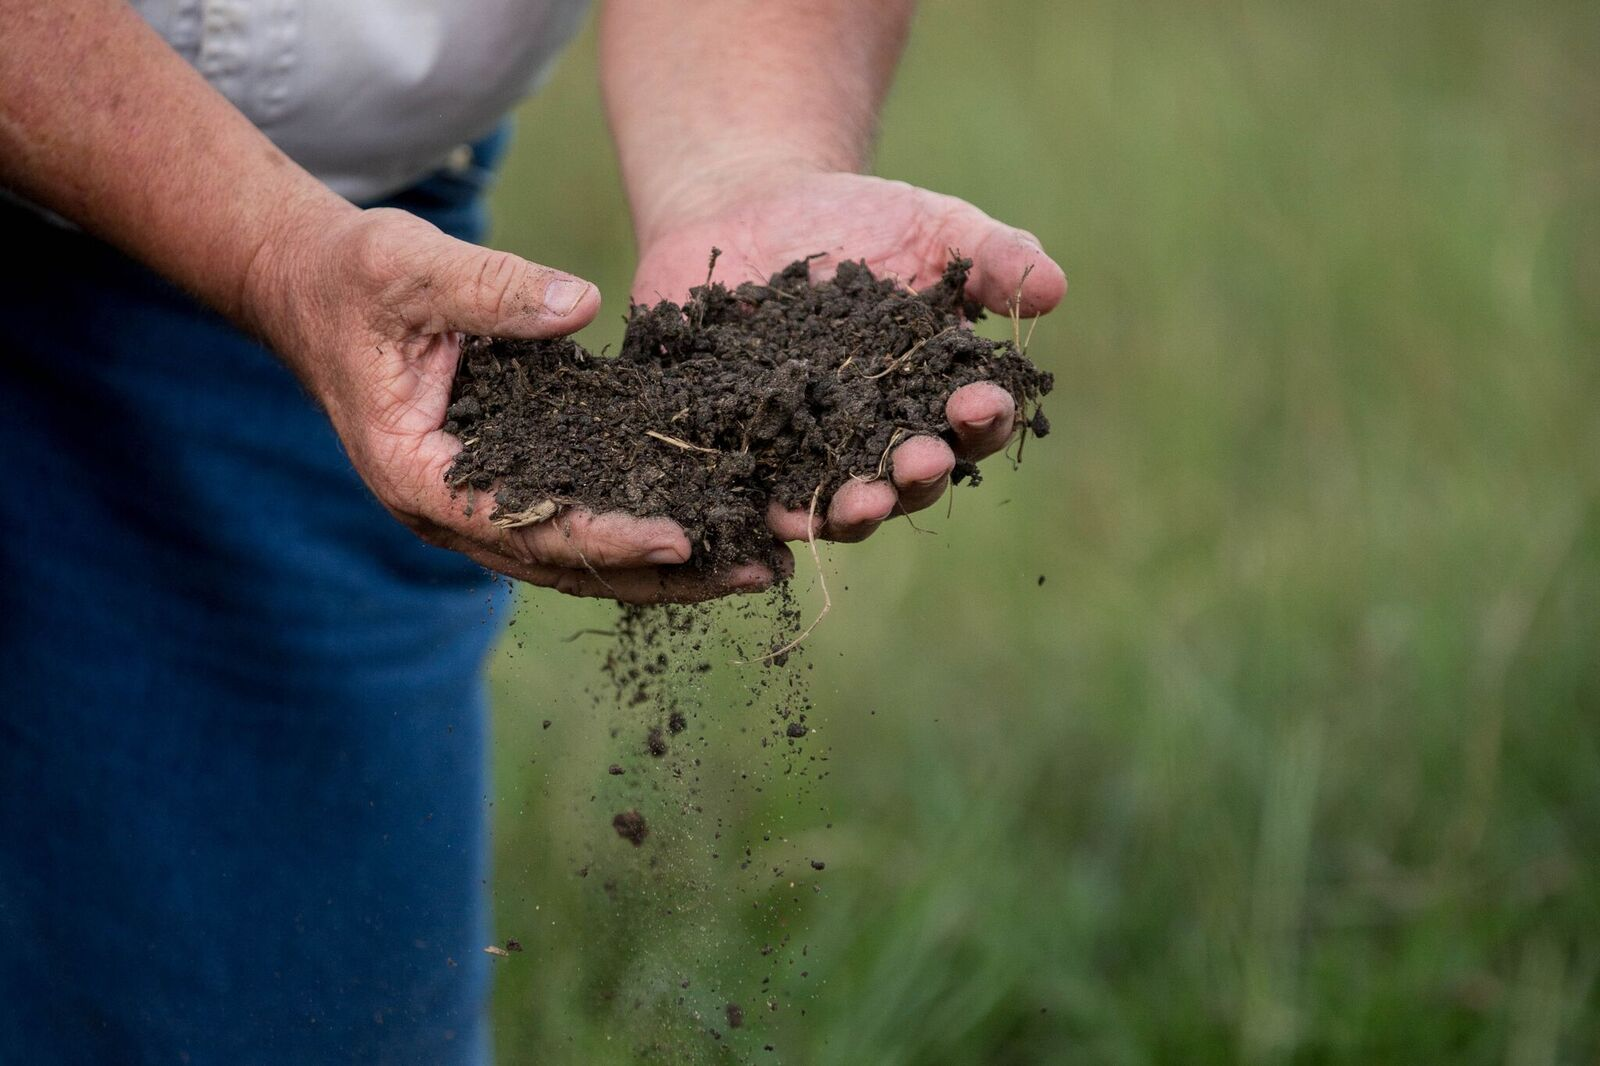 will Harris holds a handful of rich soil